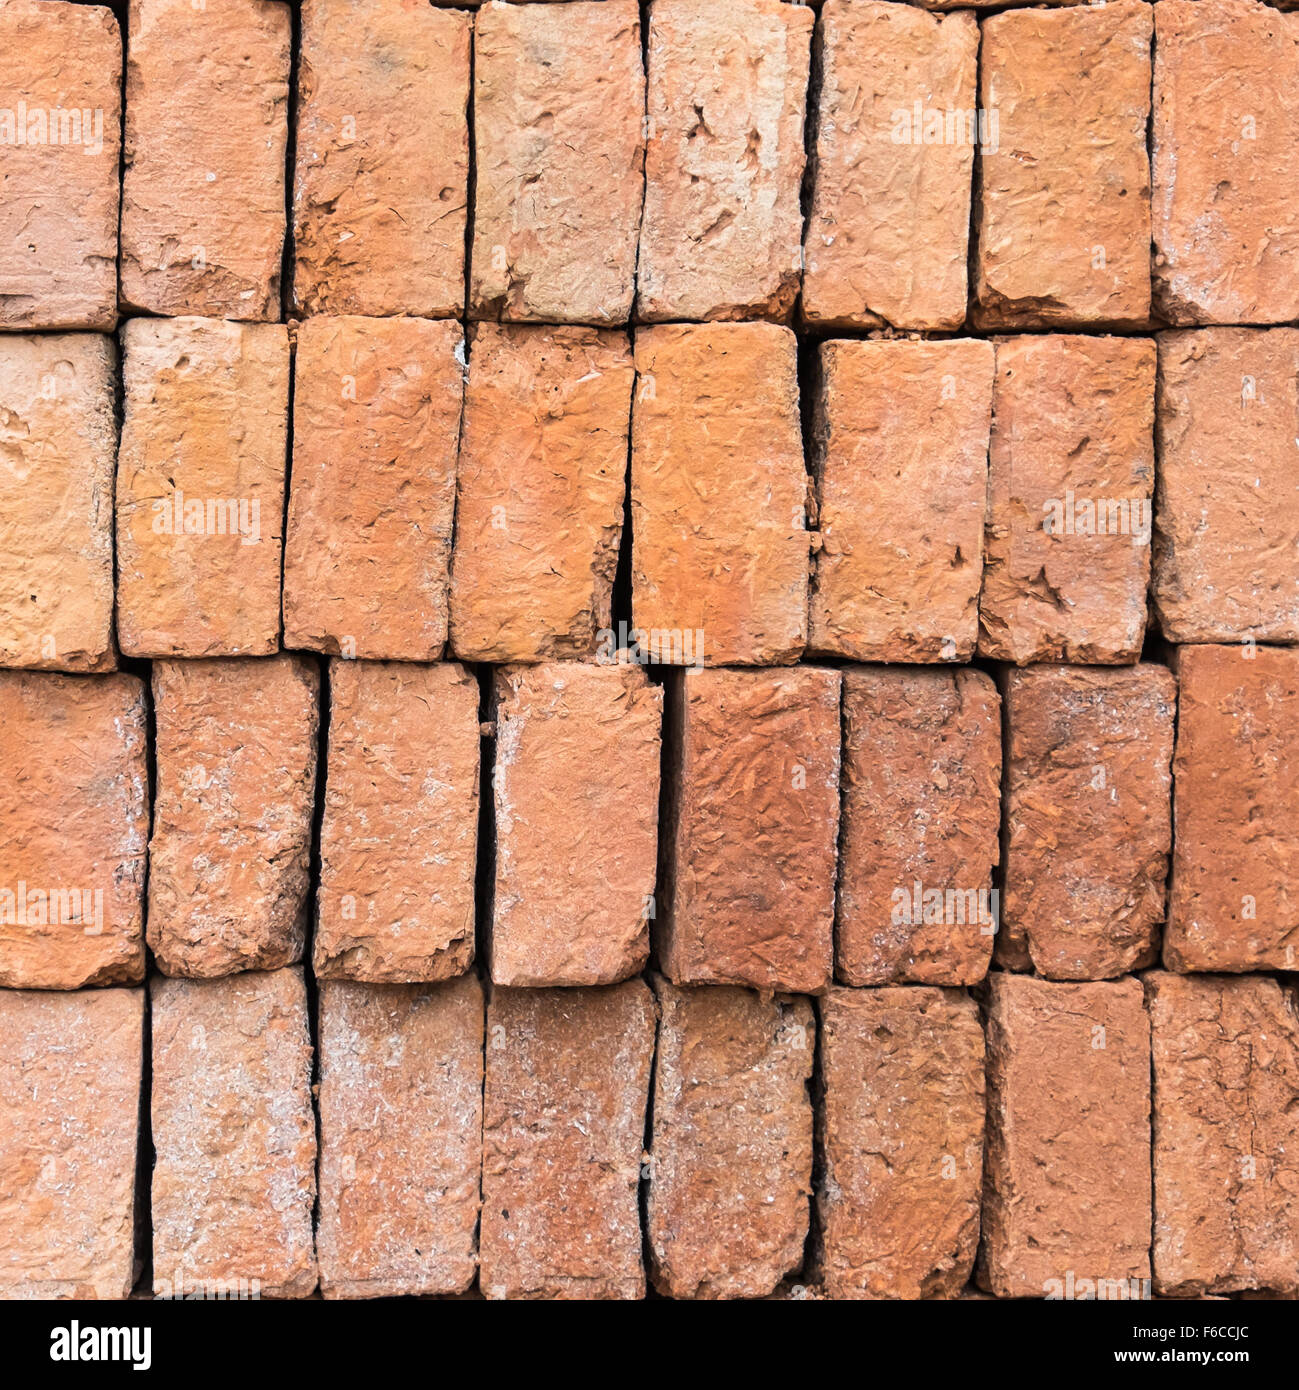 red bricks stacked background - Stock Image